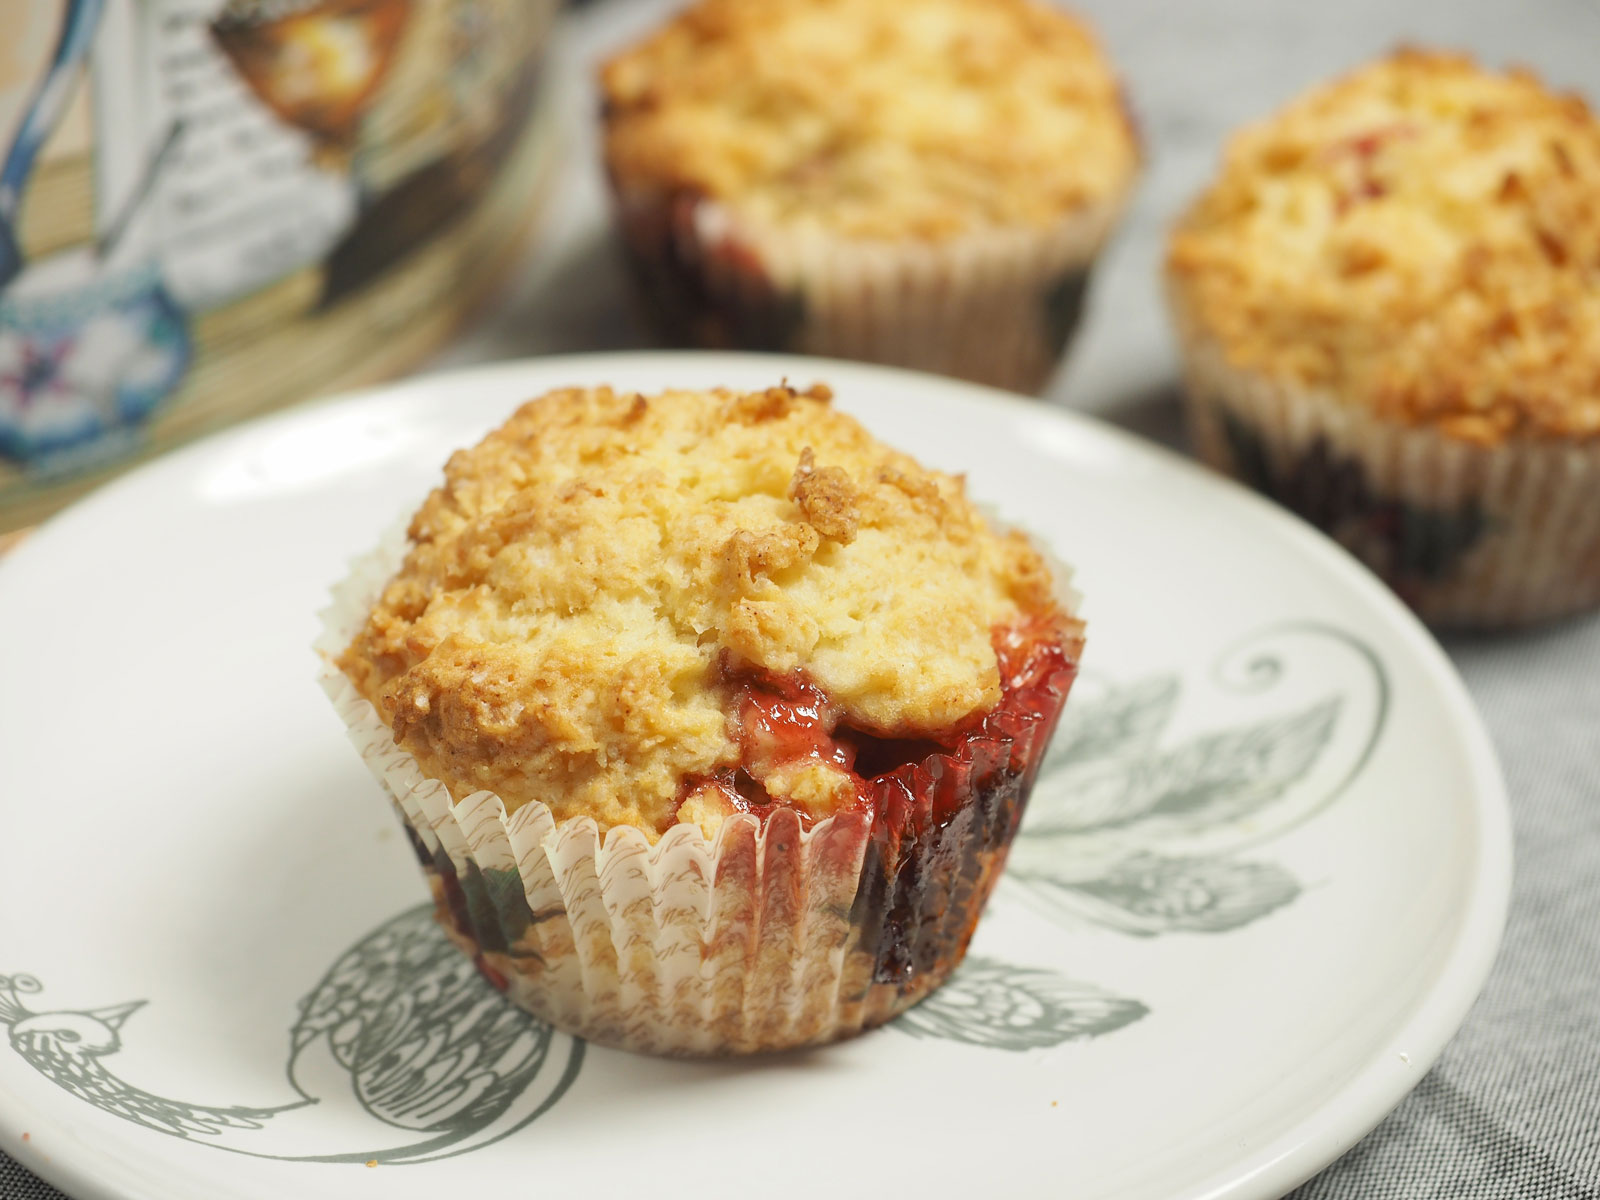 Muffin | 9 Creative Ways To Use Your Leftover Juicing Pulp